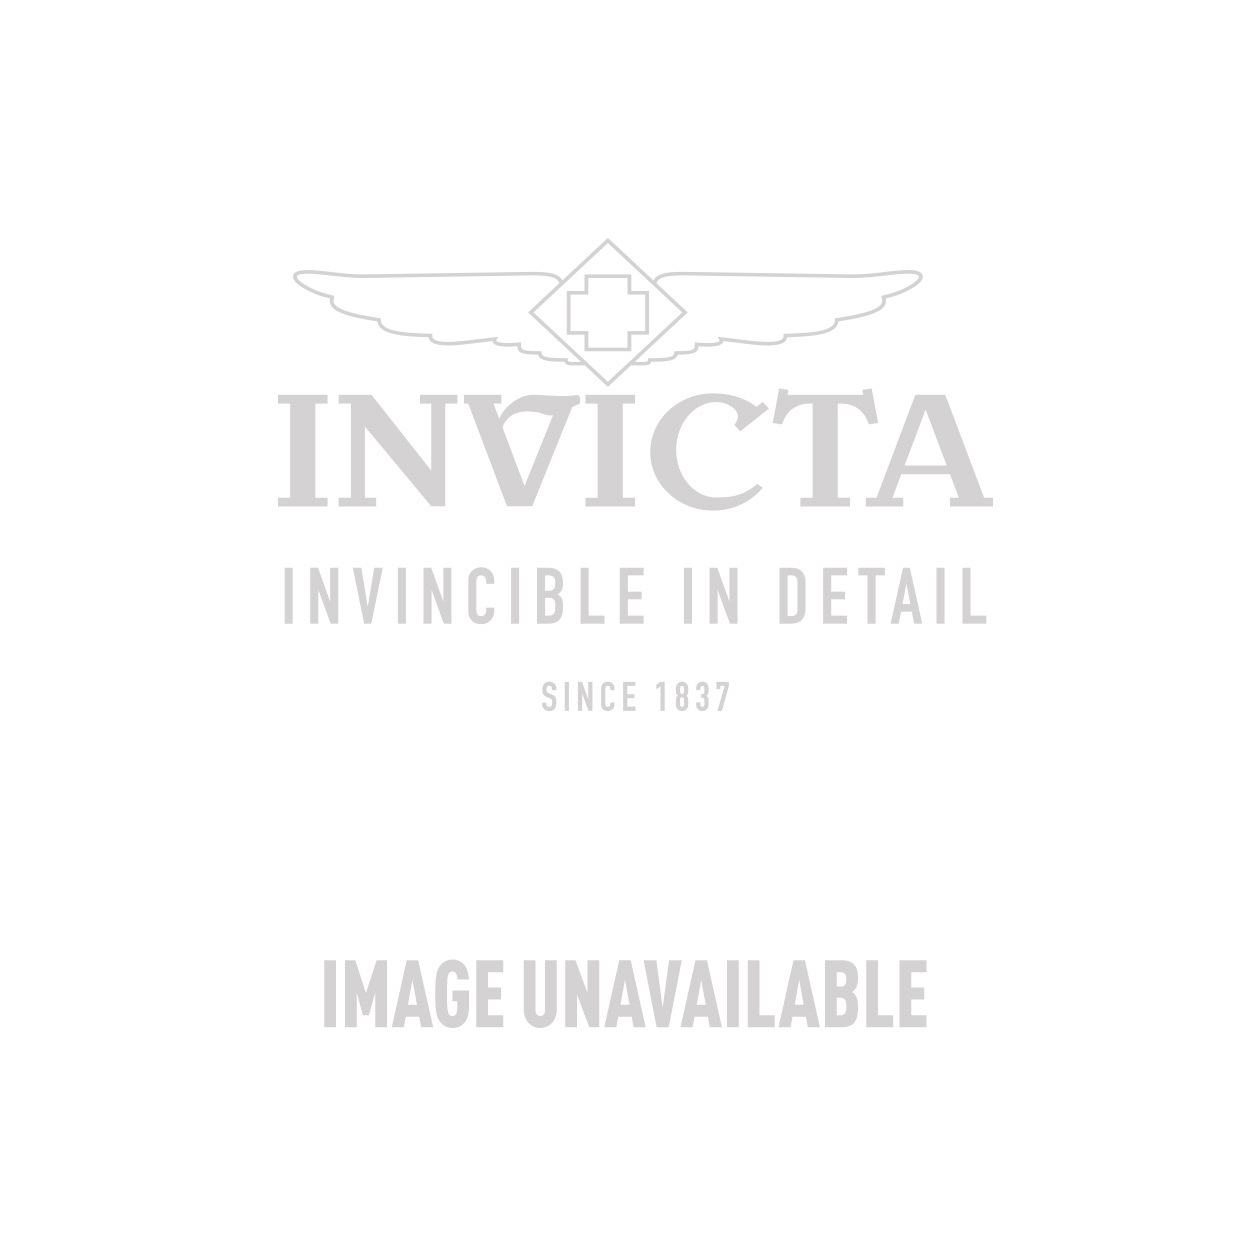 Invicta Reserve Swiss Made Quartz Watch - Gold, Gunmetal case with Gold, Gunmetal tone Stainless Steel band - Model 15837